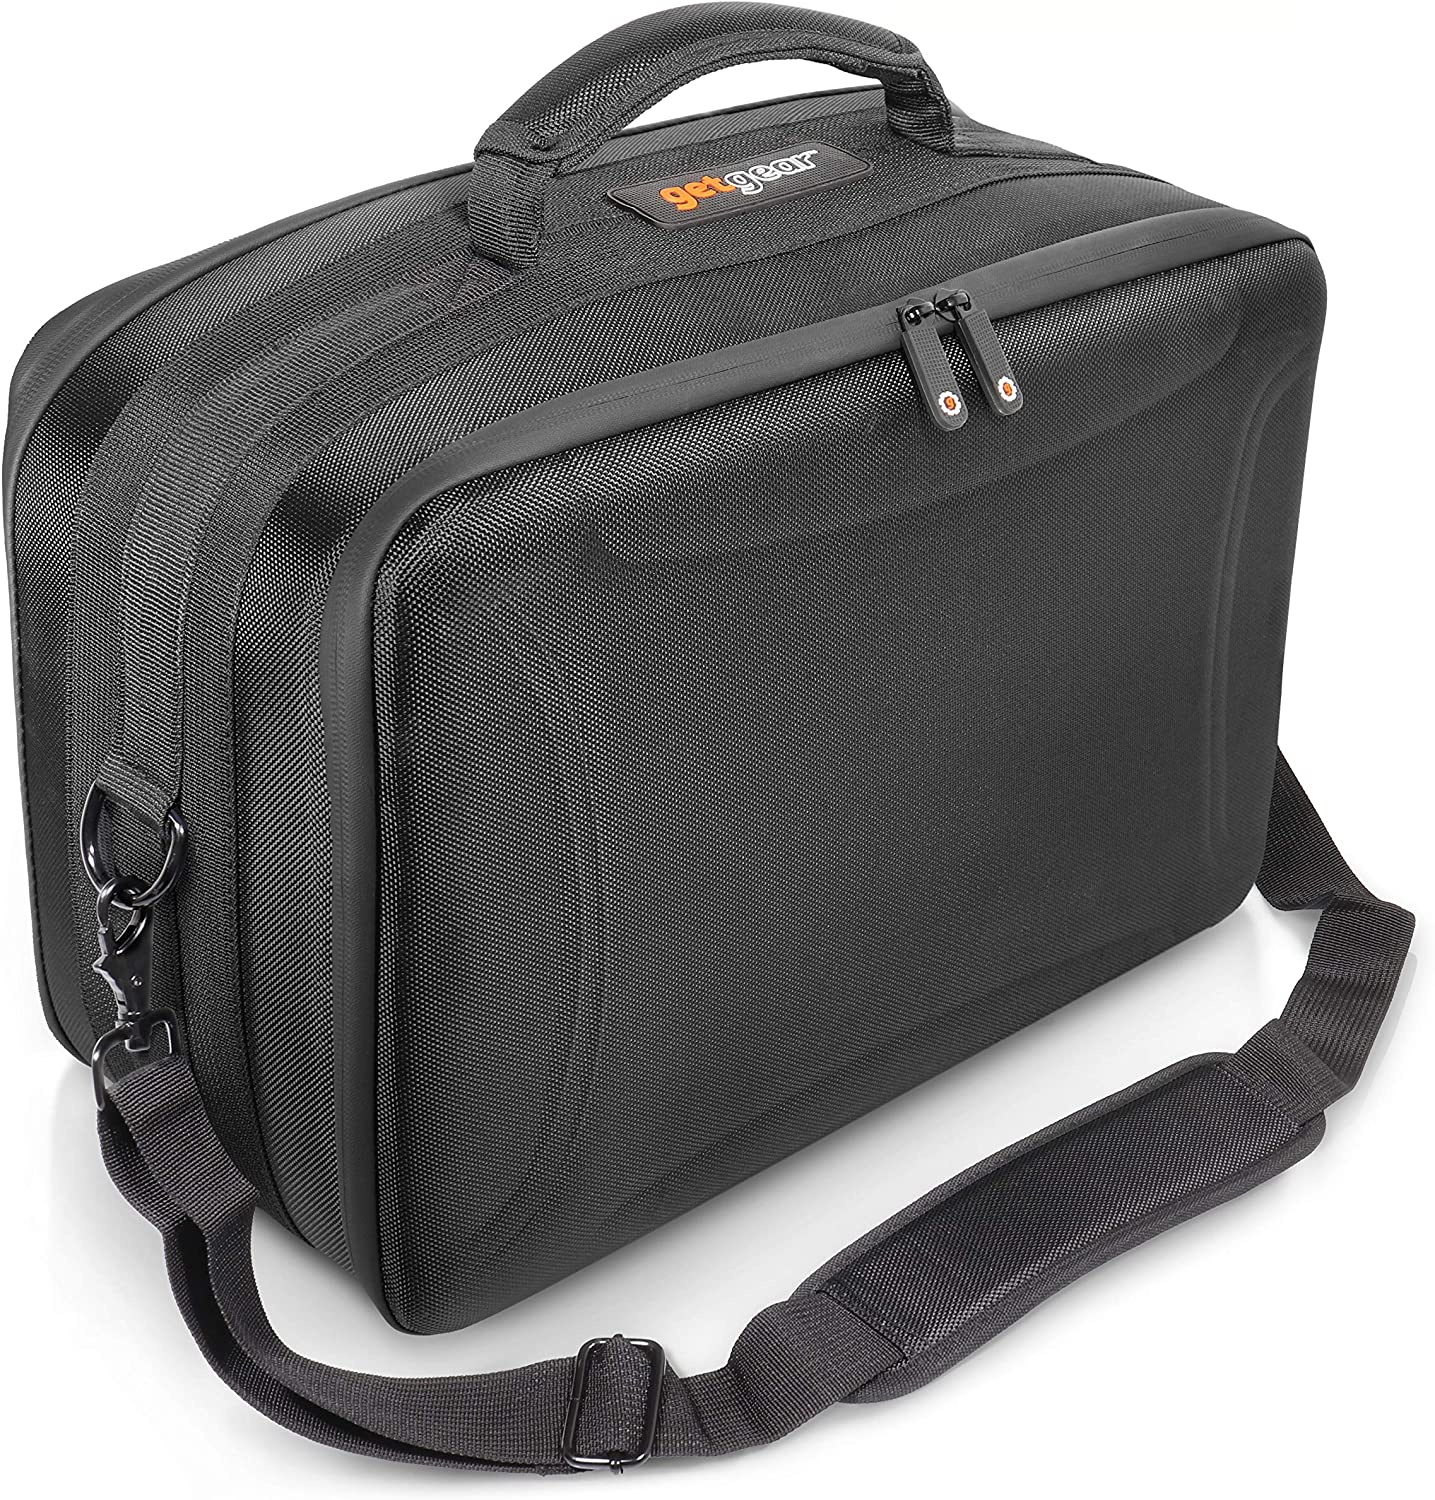 Olympus All Models Long Distance Panasonic for Canon EOS Wide Angel and Facial Nikon Sony EOS Rebel GETGEAR Professional All in one Camera case for up to 2 Cameras and Three Lenses